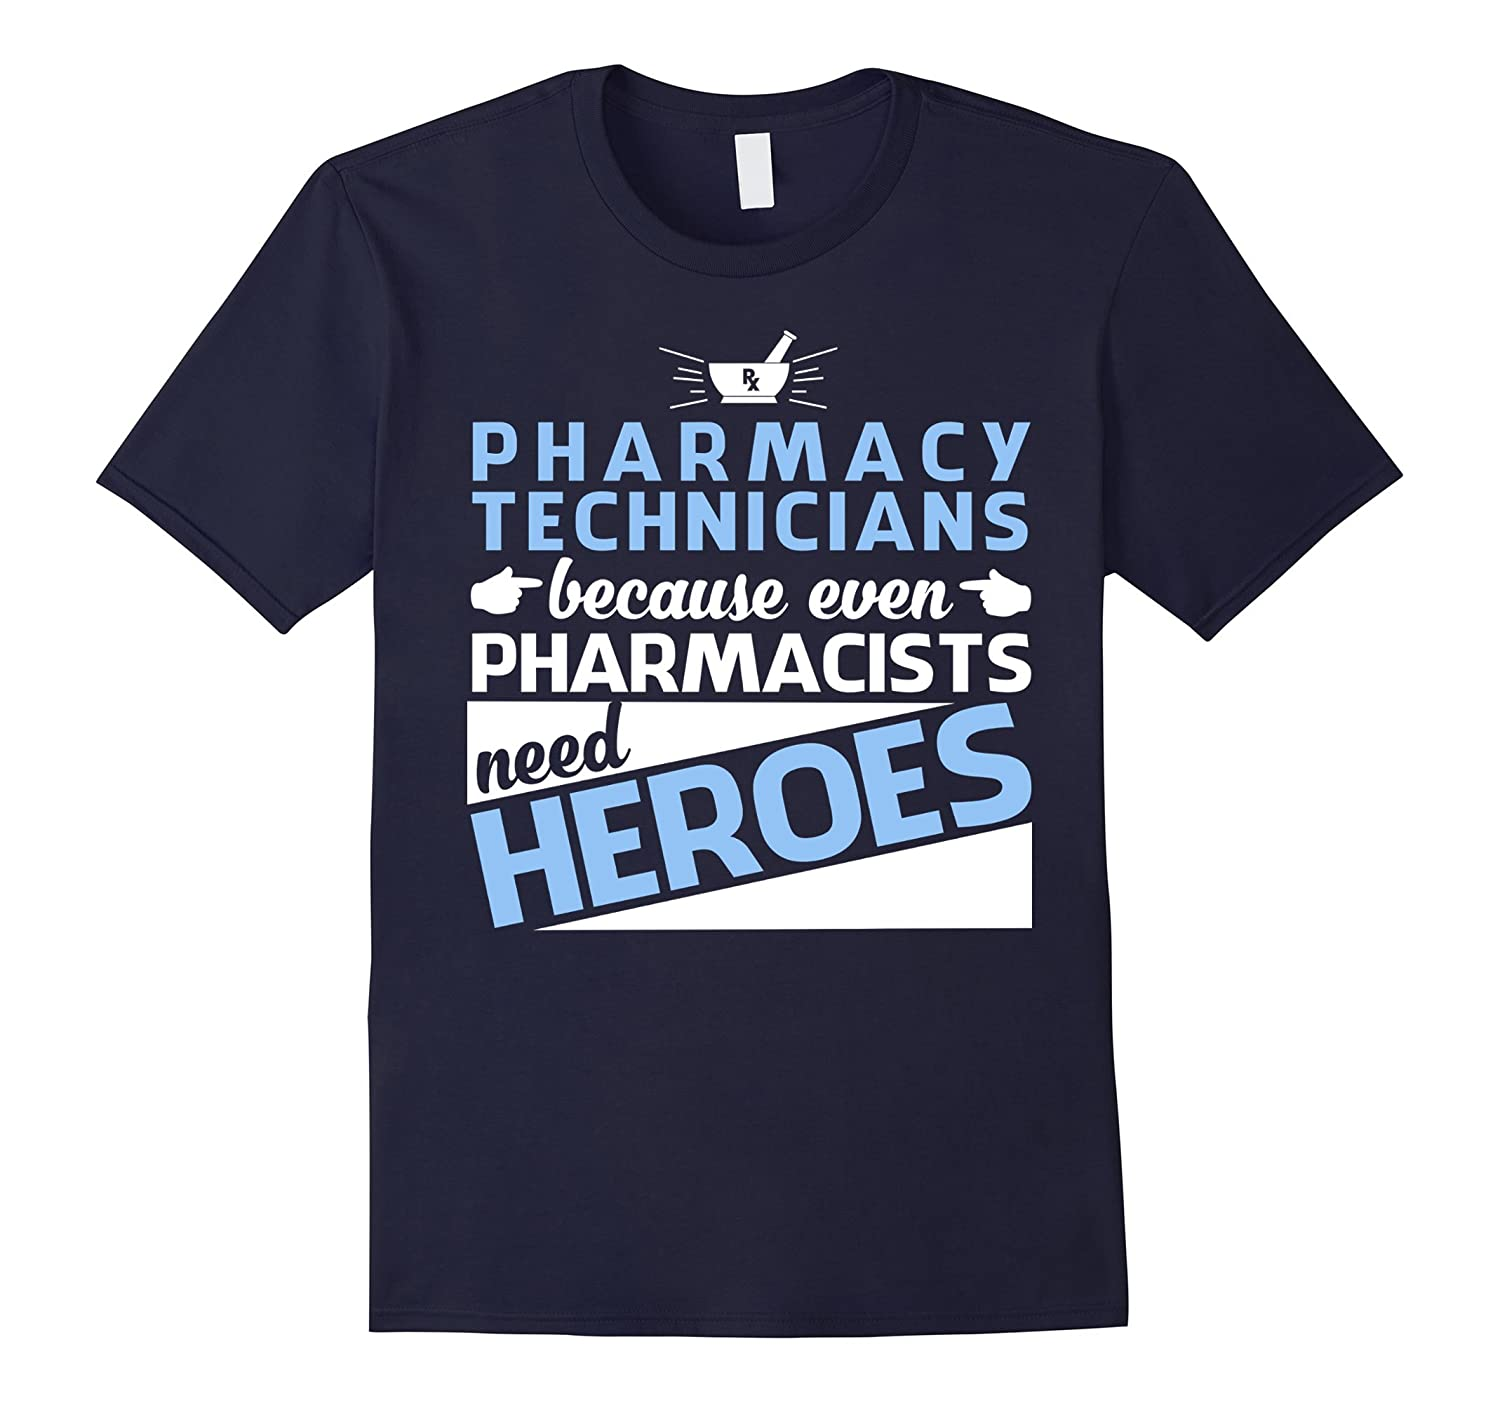 PHARMACY TECHNICIANS BECAUSE EVEN PHARMACISTS NEED HEROES-TH